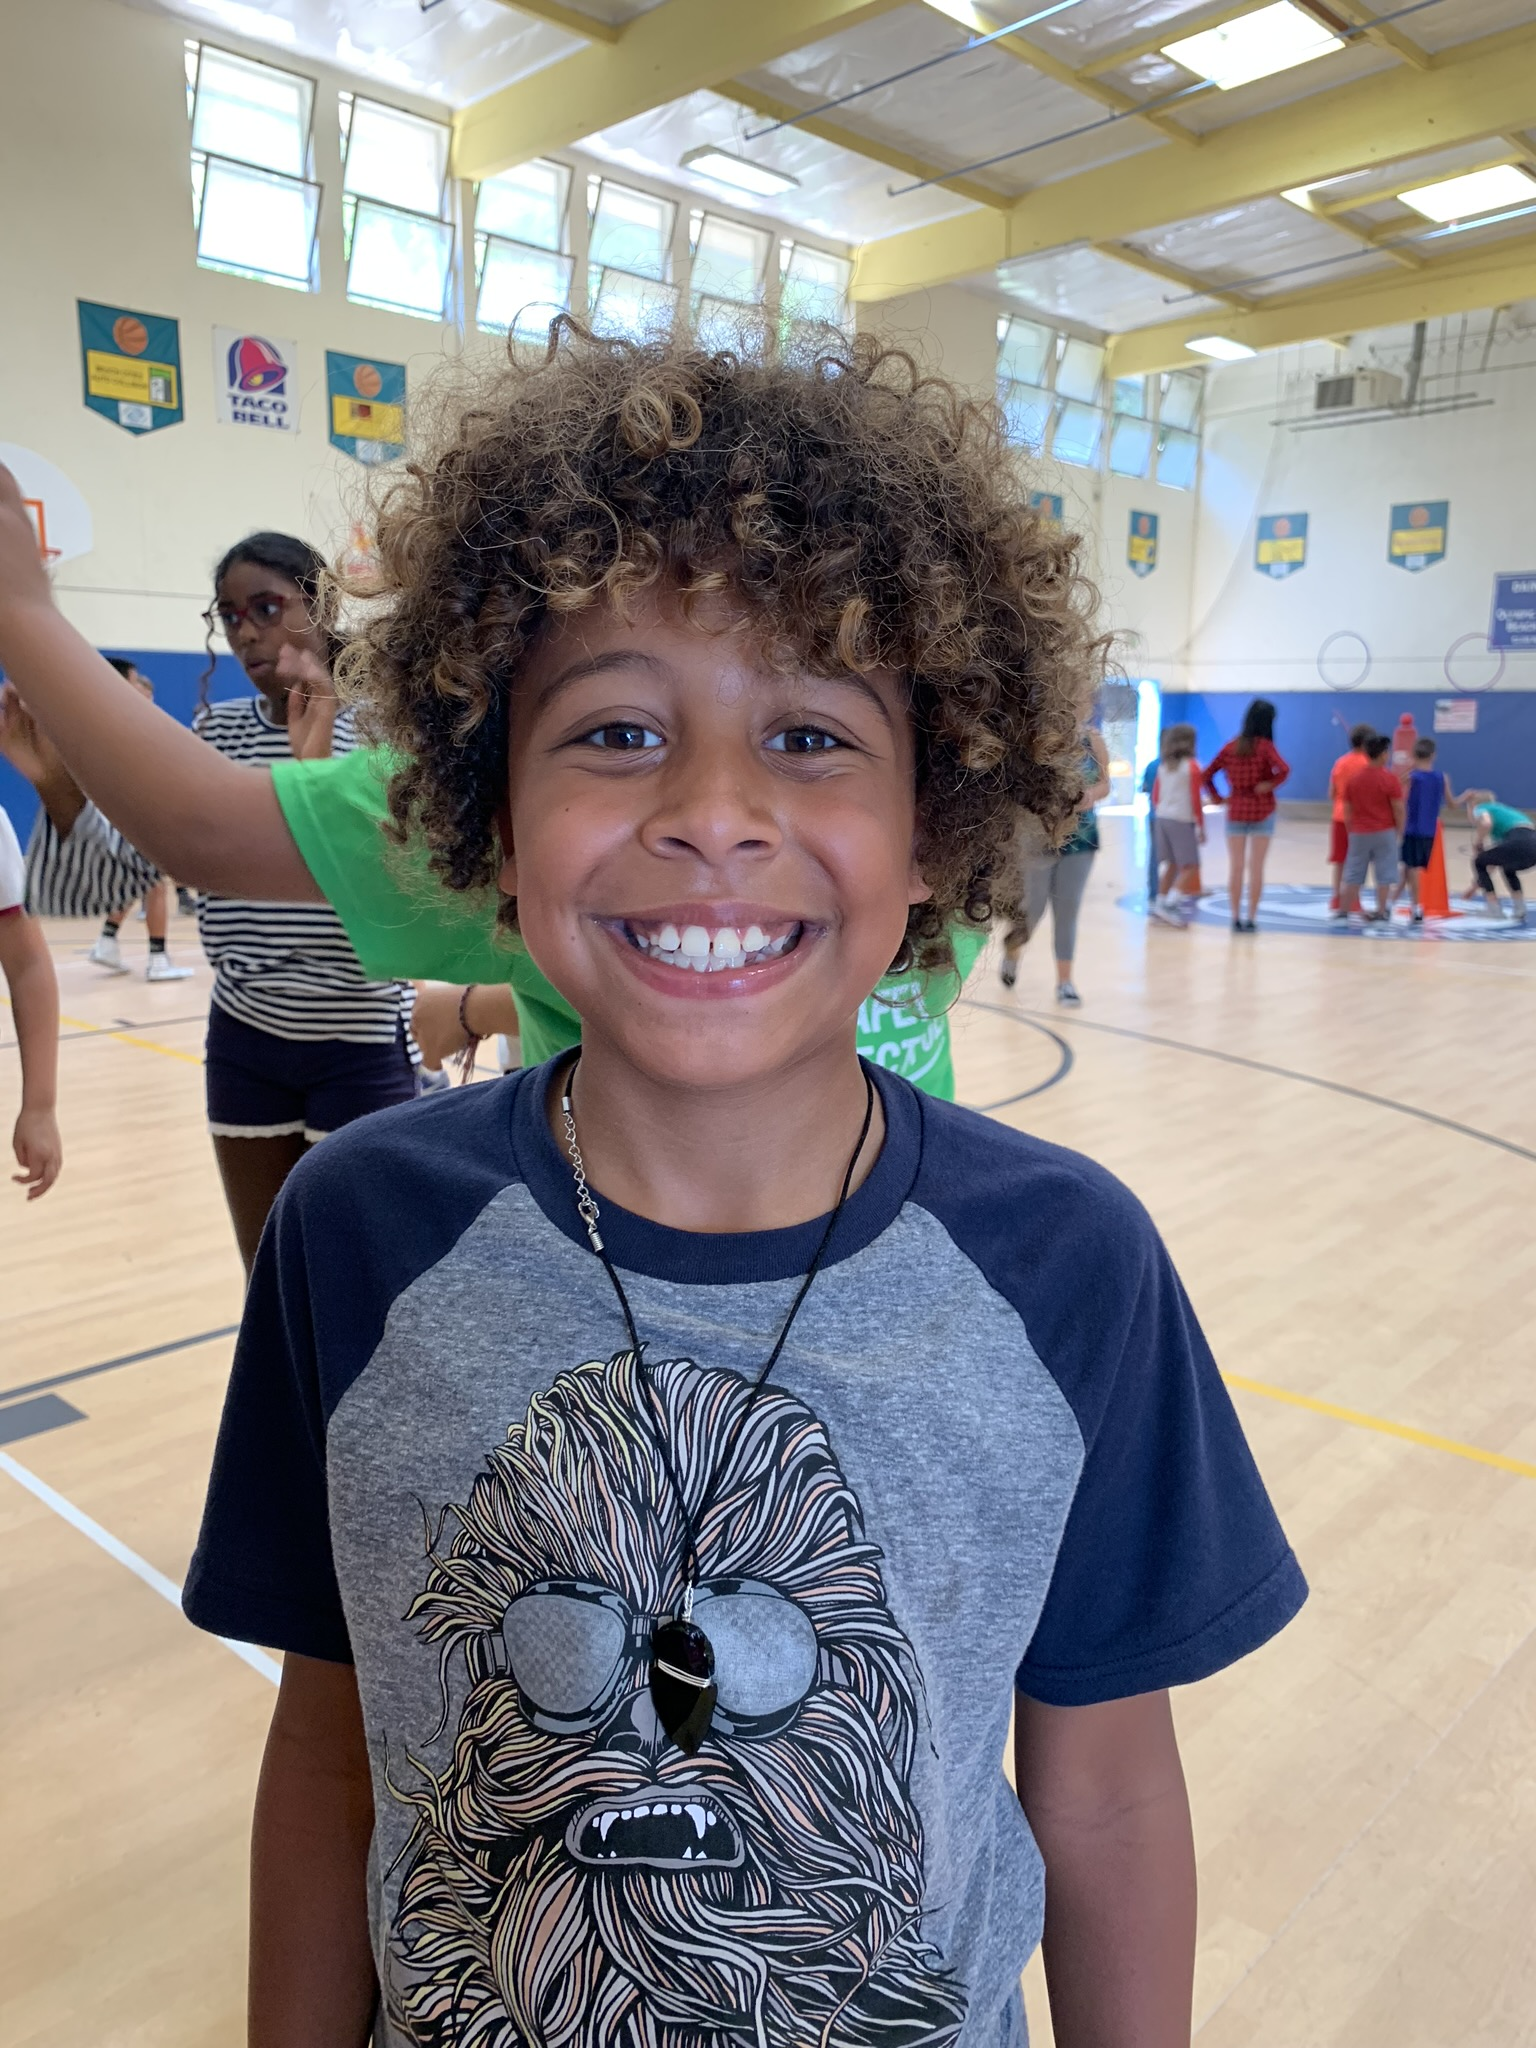 Young boy posing for picture in the Canyon Enrichment Center gym